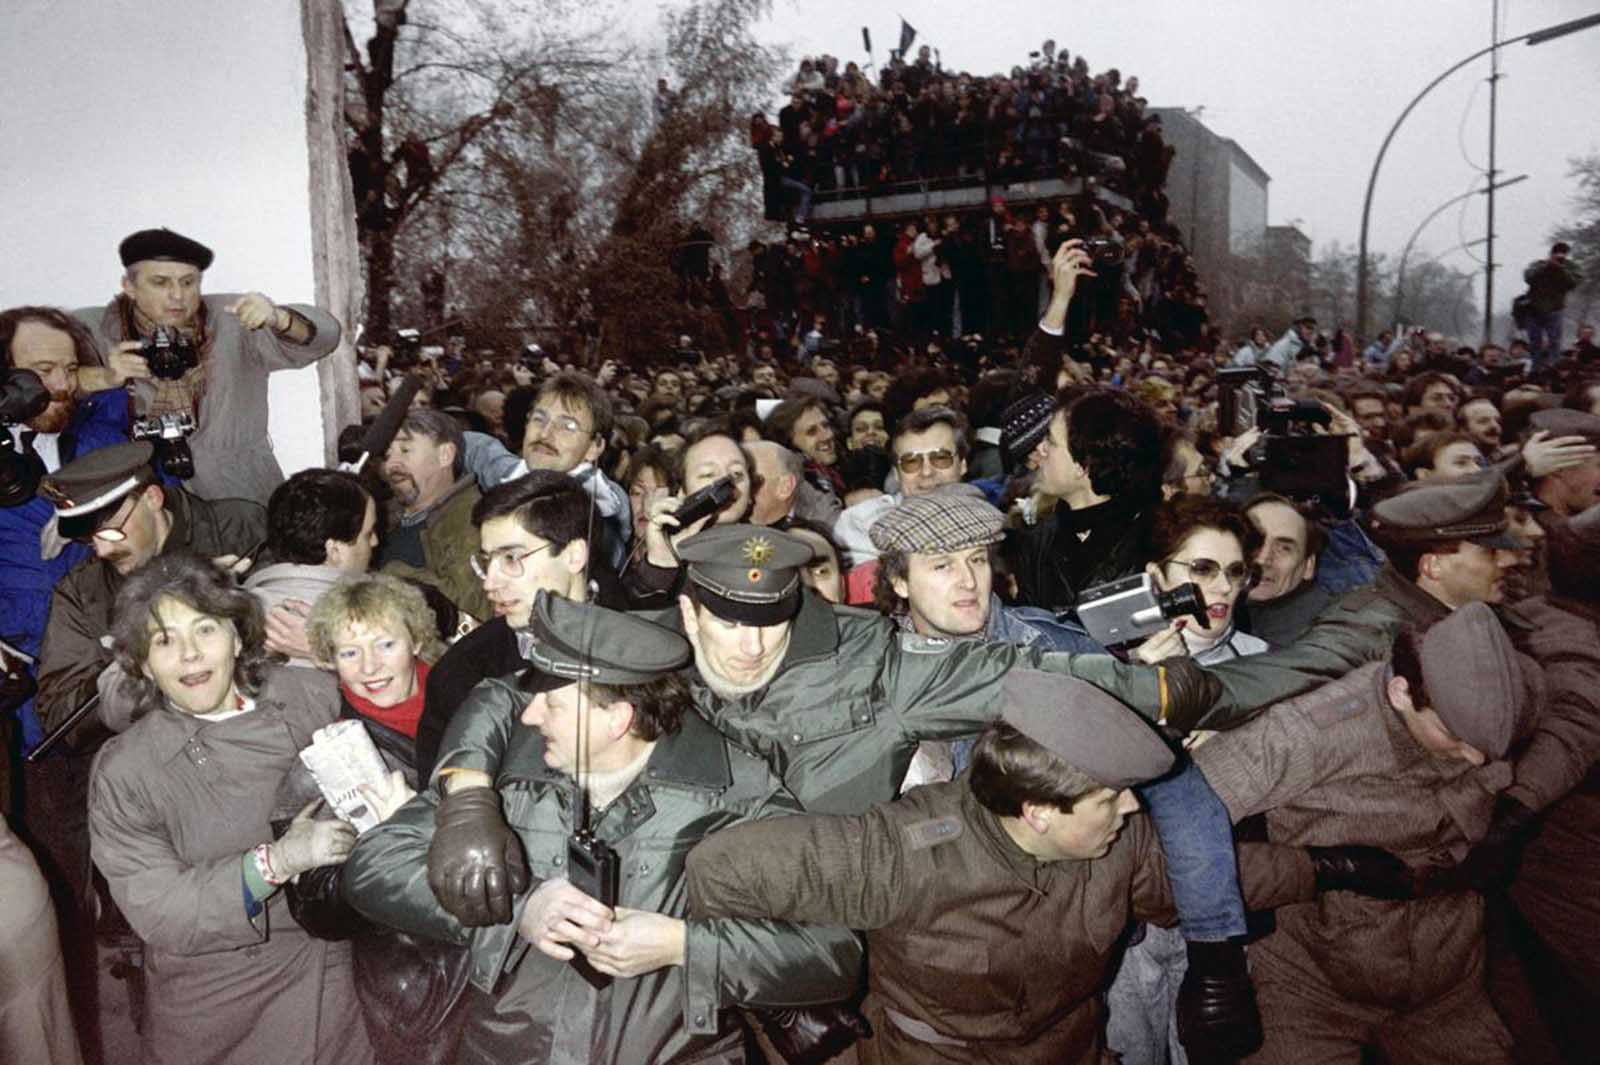 East and West German Police try to contain the crowd of East Berliners flowing through the recent opening made in the Berlin wall at Potsdamerplatz. Photo taken on November 12, 1989.